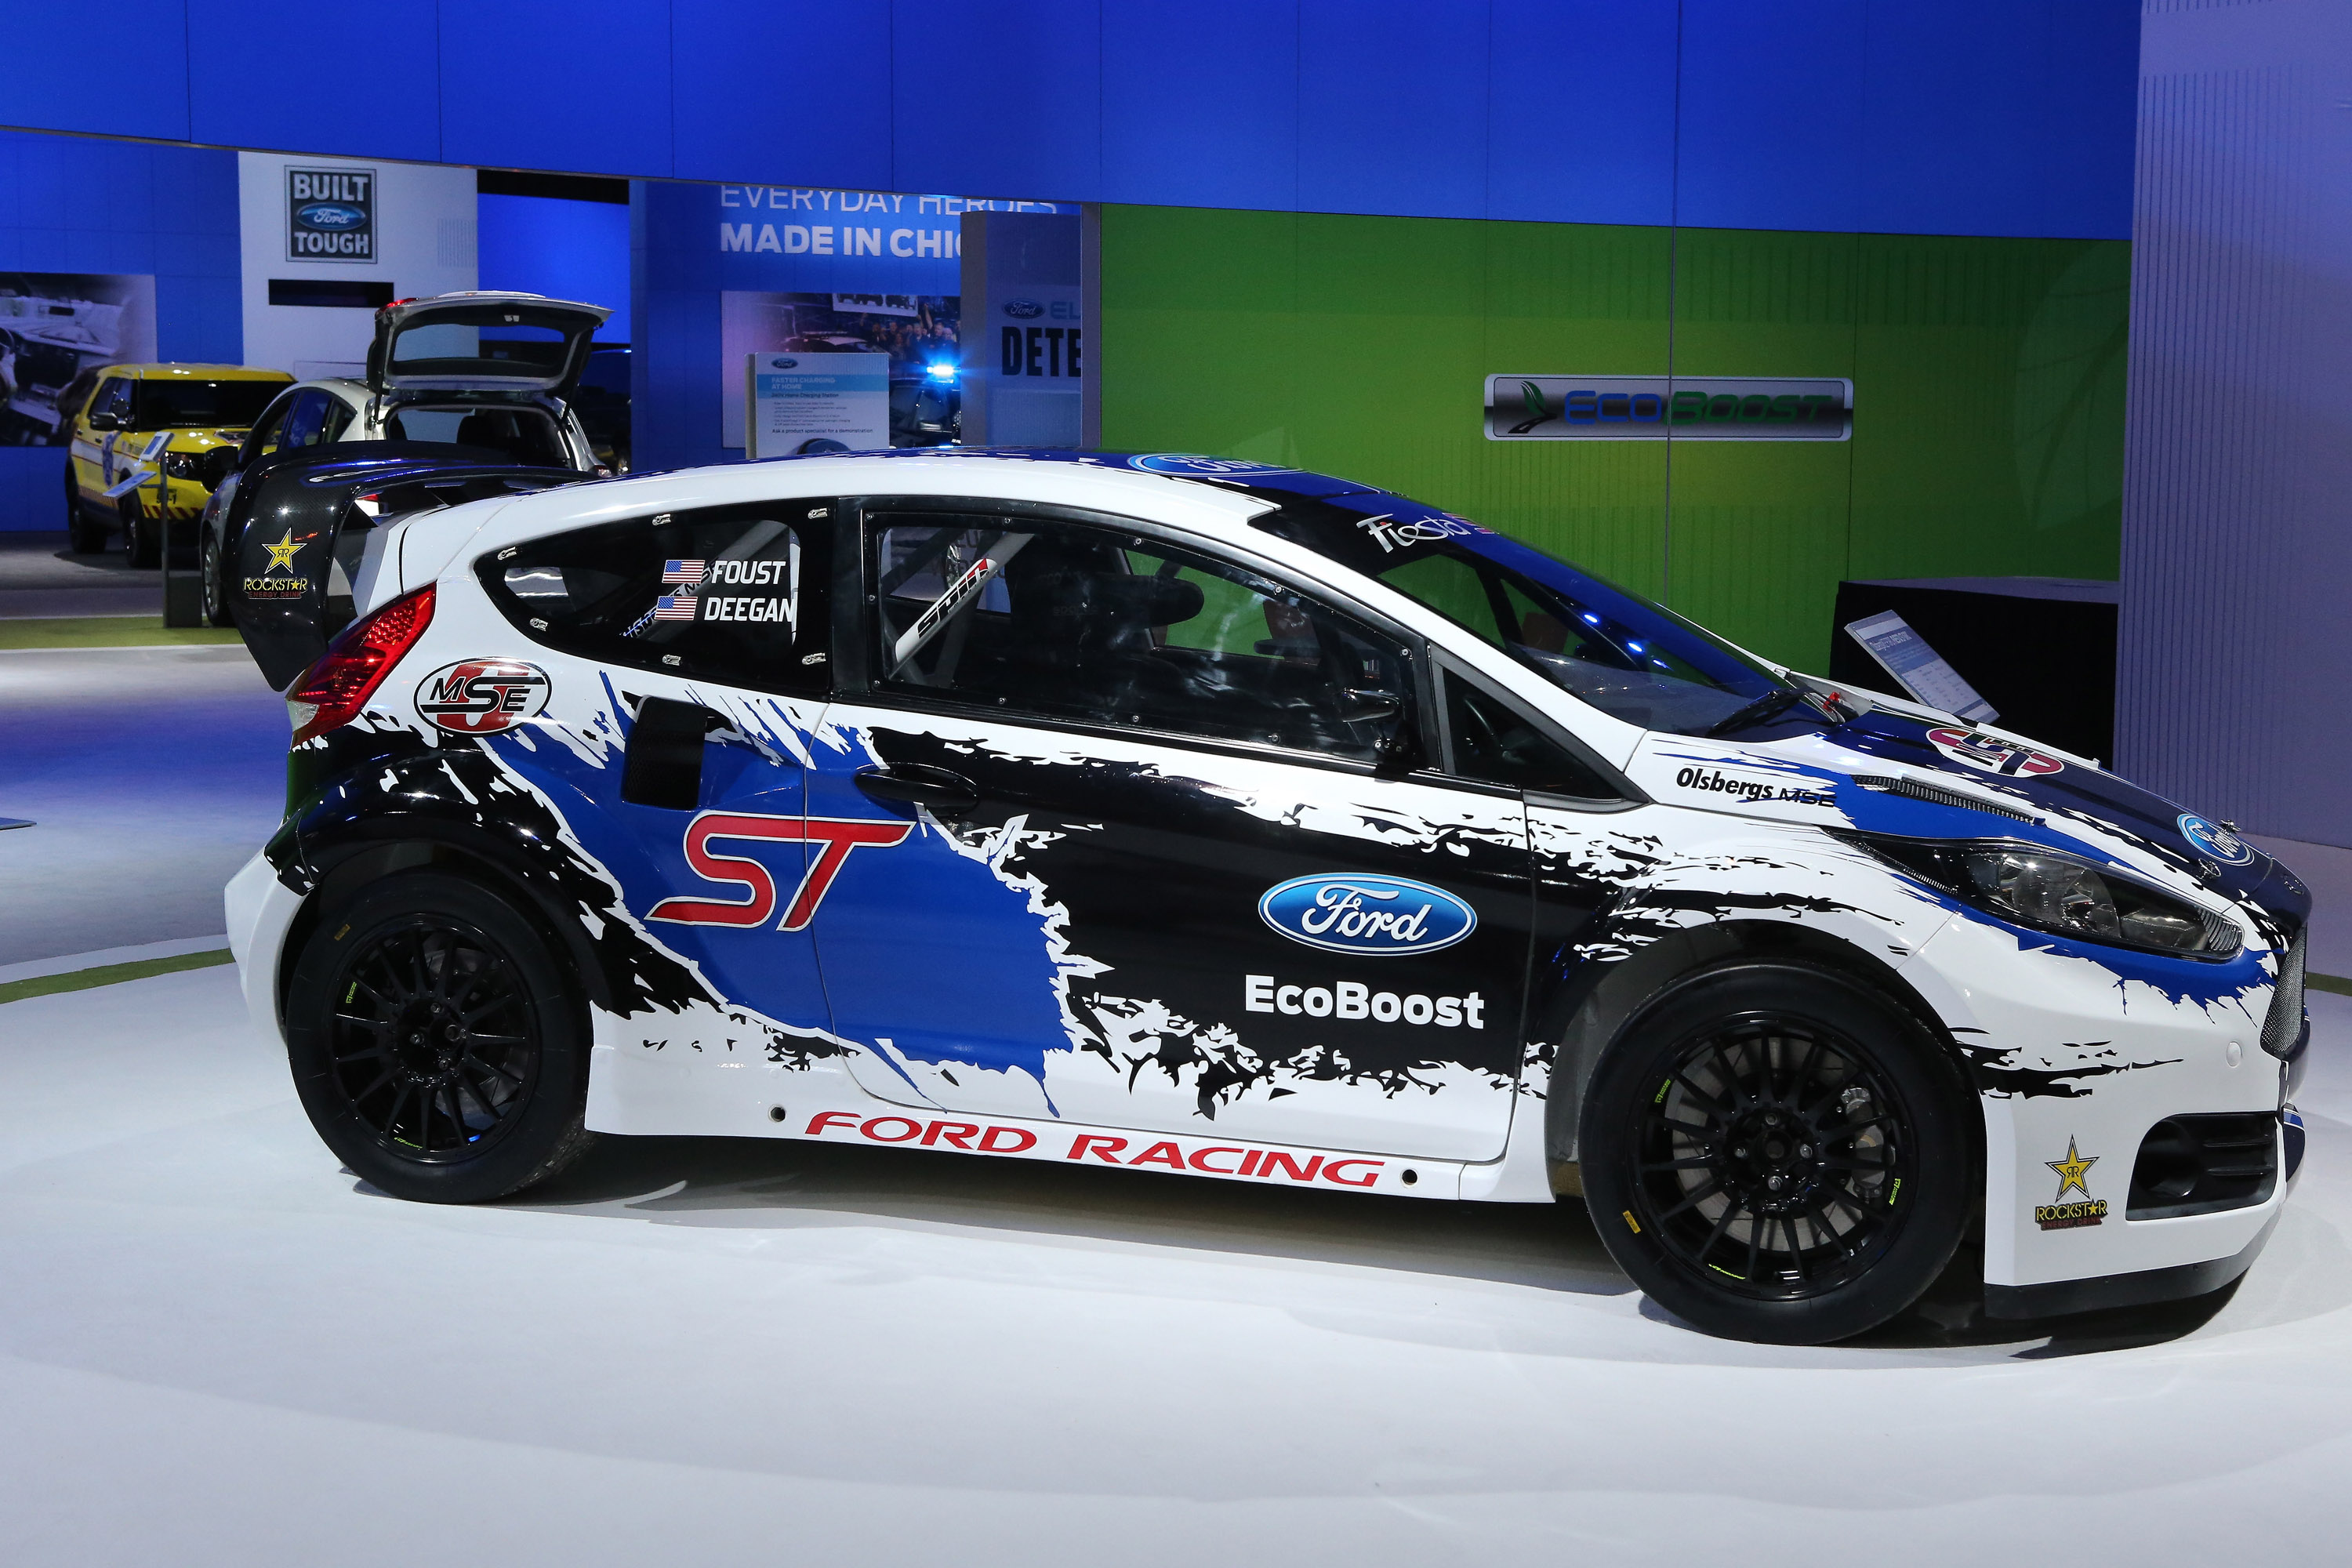 Ford Racing Fiesta St Chicago 2013 Picture 80867